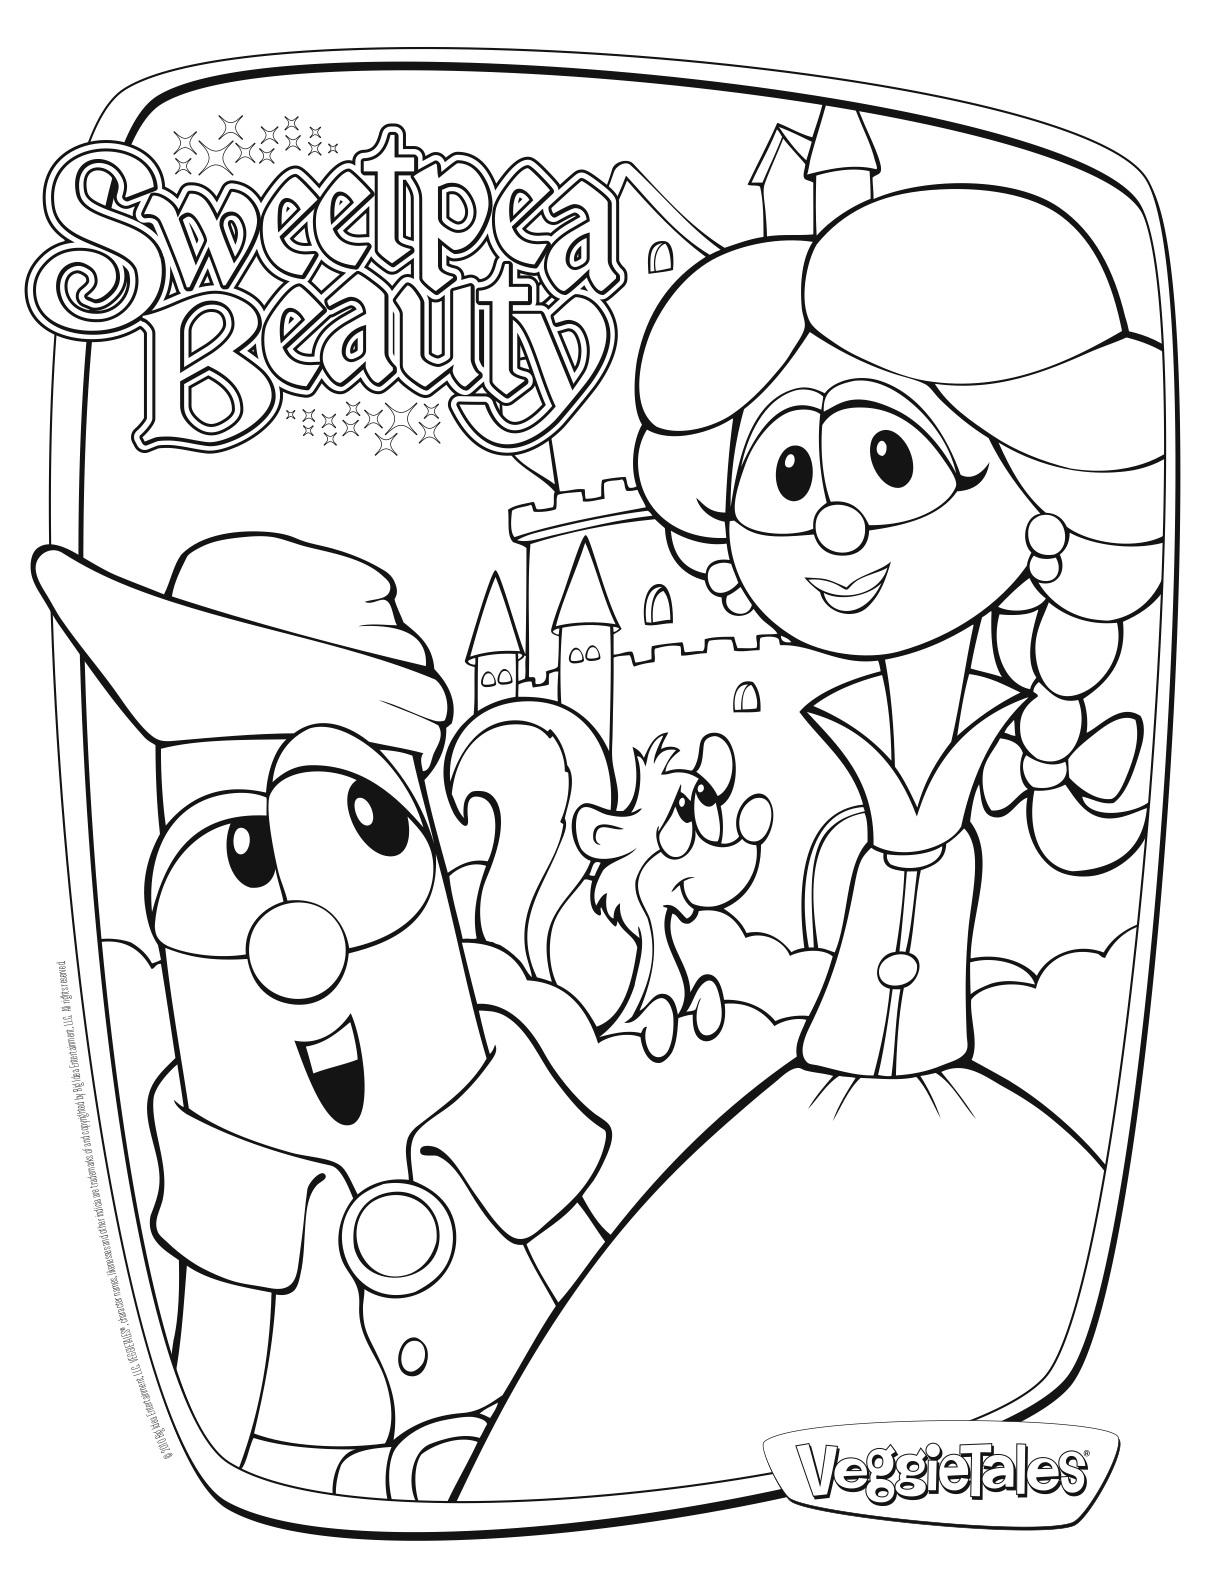 27 veggie tales coloring pages collections - Free Veggie Tales Coloring Pages 2